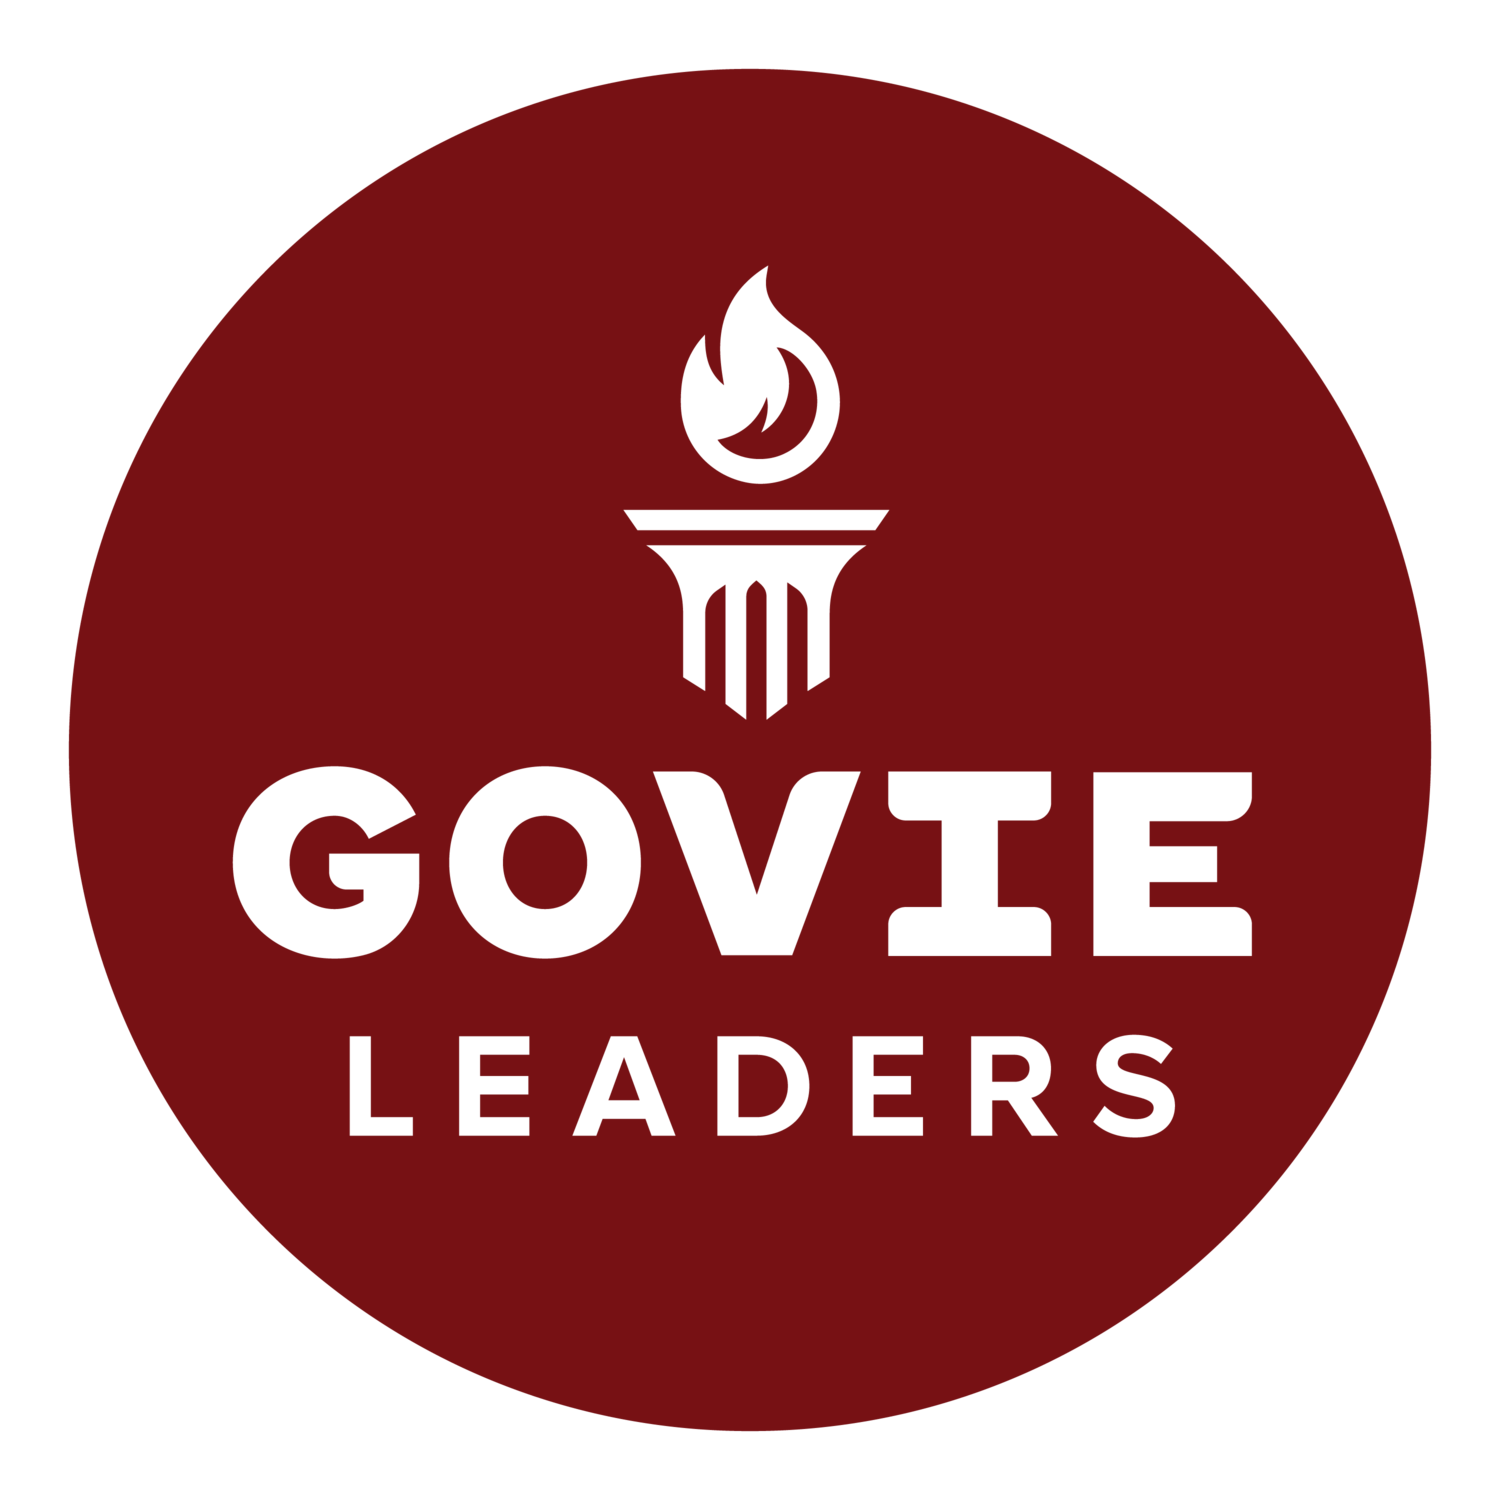 Govie Leaders